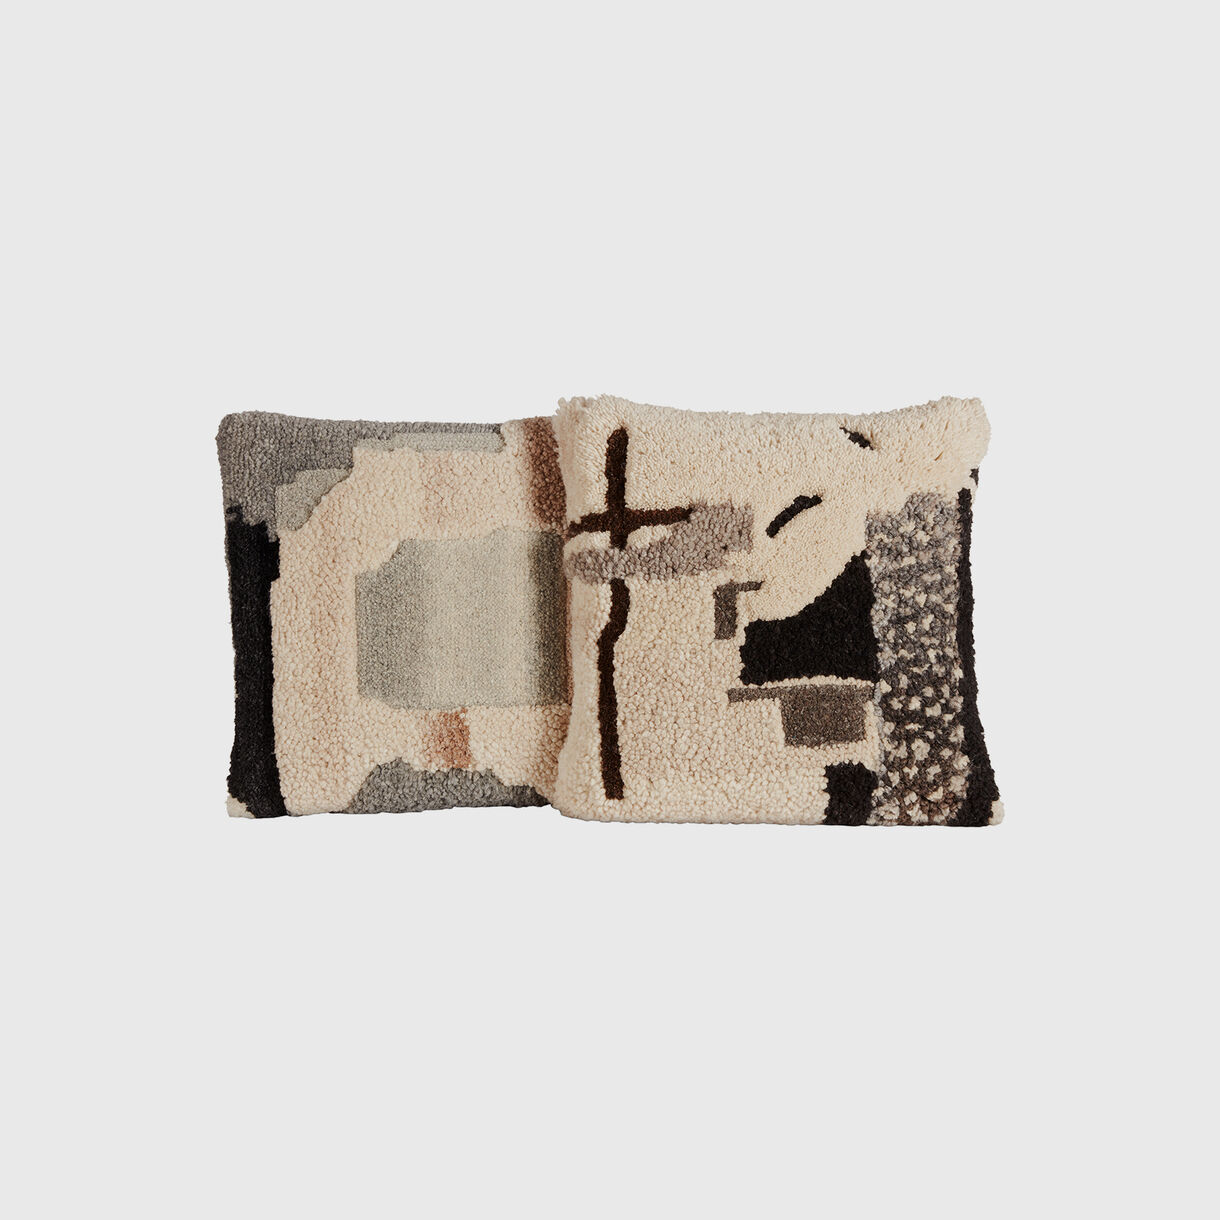 Abstract Cushions, Group